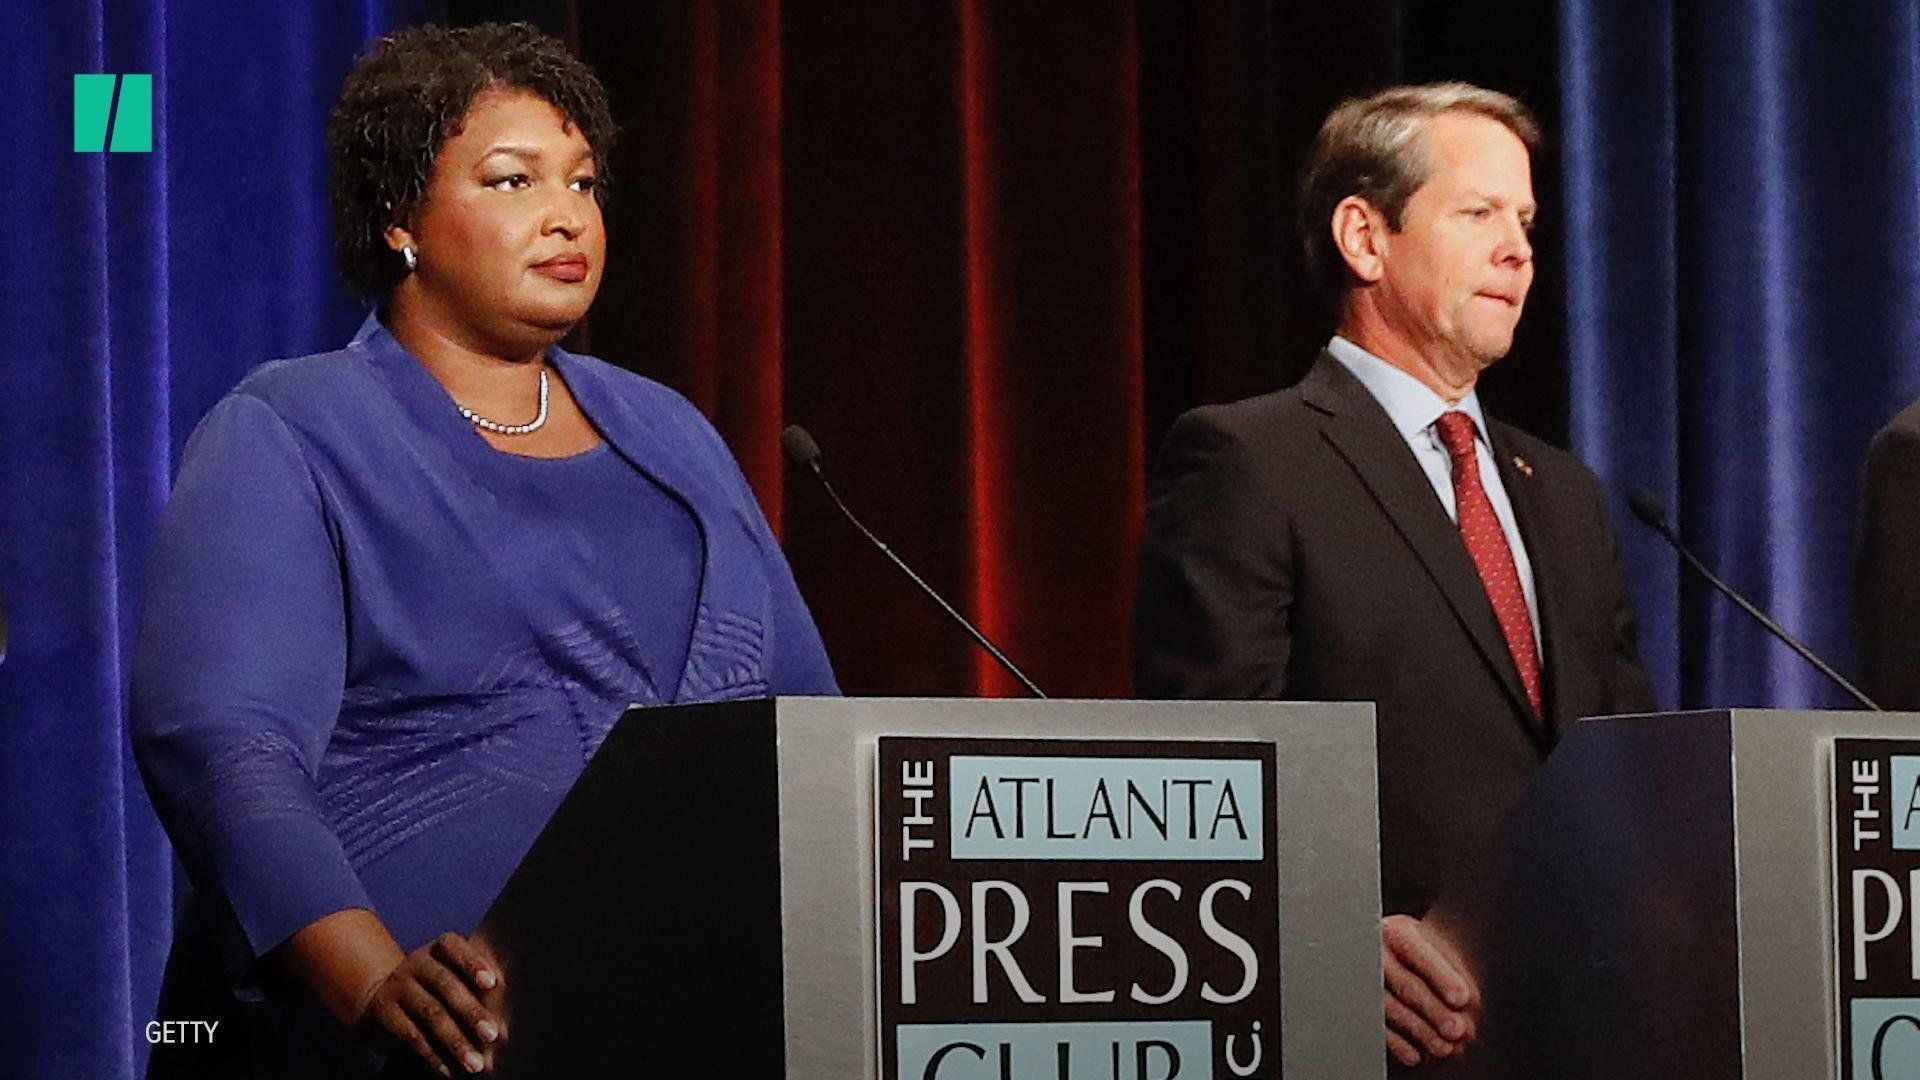 History, Trump and partisan bitterness collide in Georgia governor's race